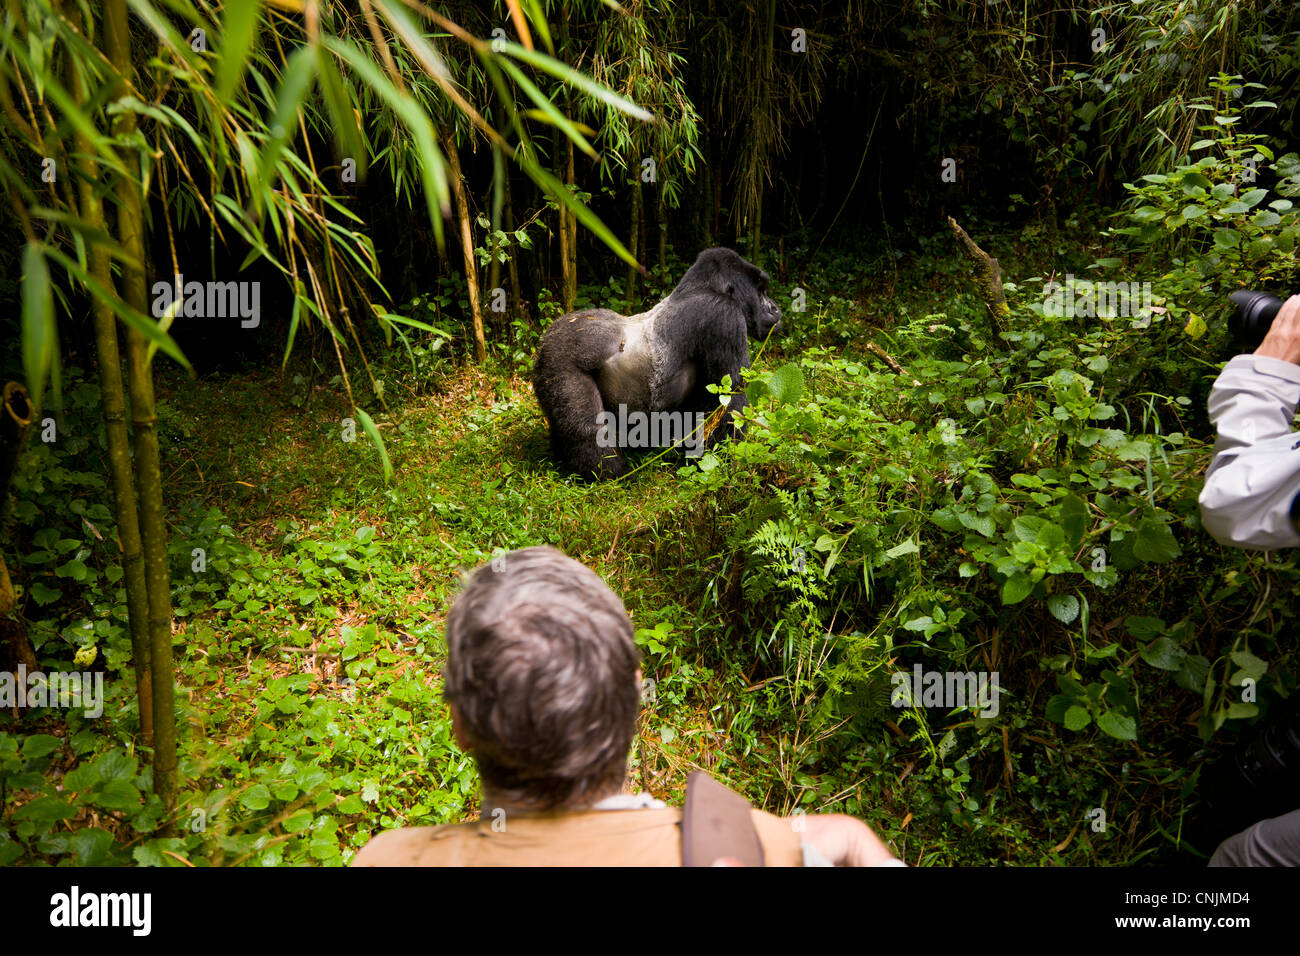 Africa, Rwanda, Agashiya, silverback leader of the Agashiya Group at Volcanoes NP in the Virungas; observed by gorilla - Stock Image